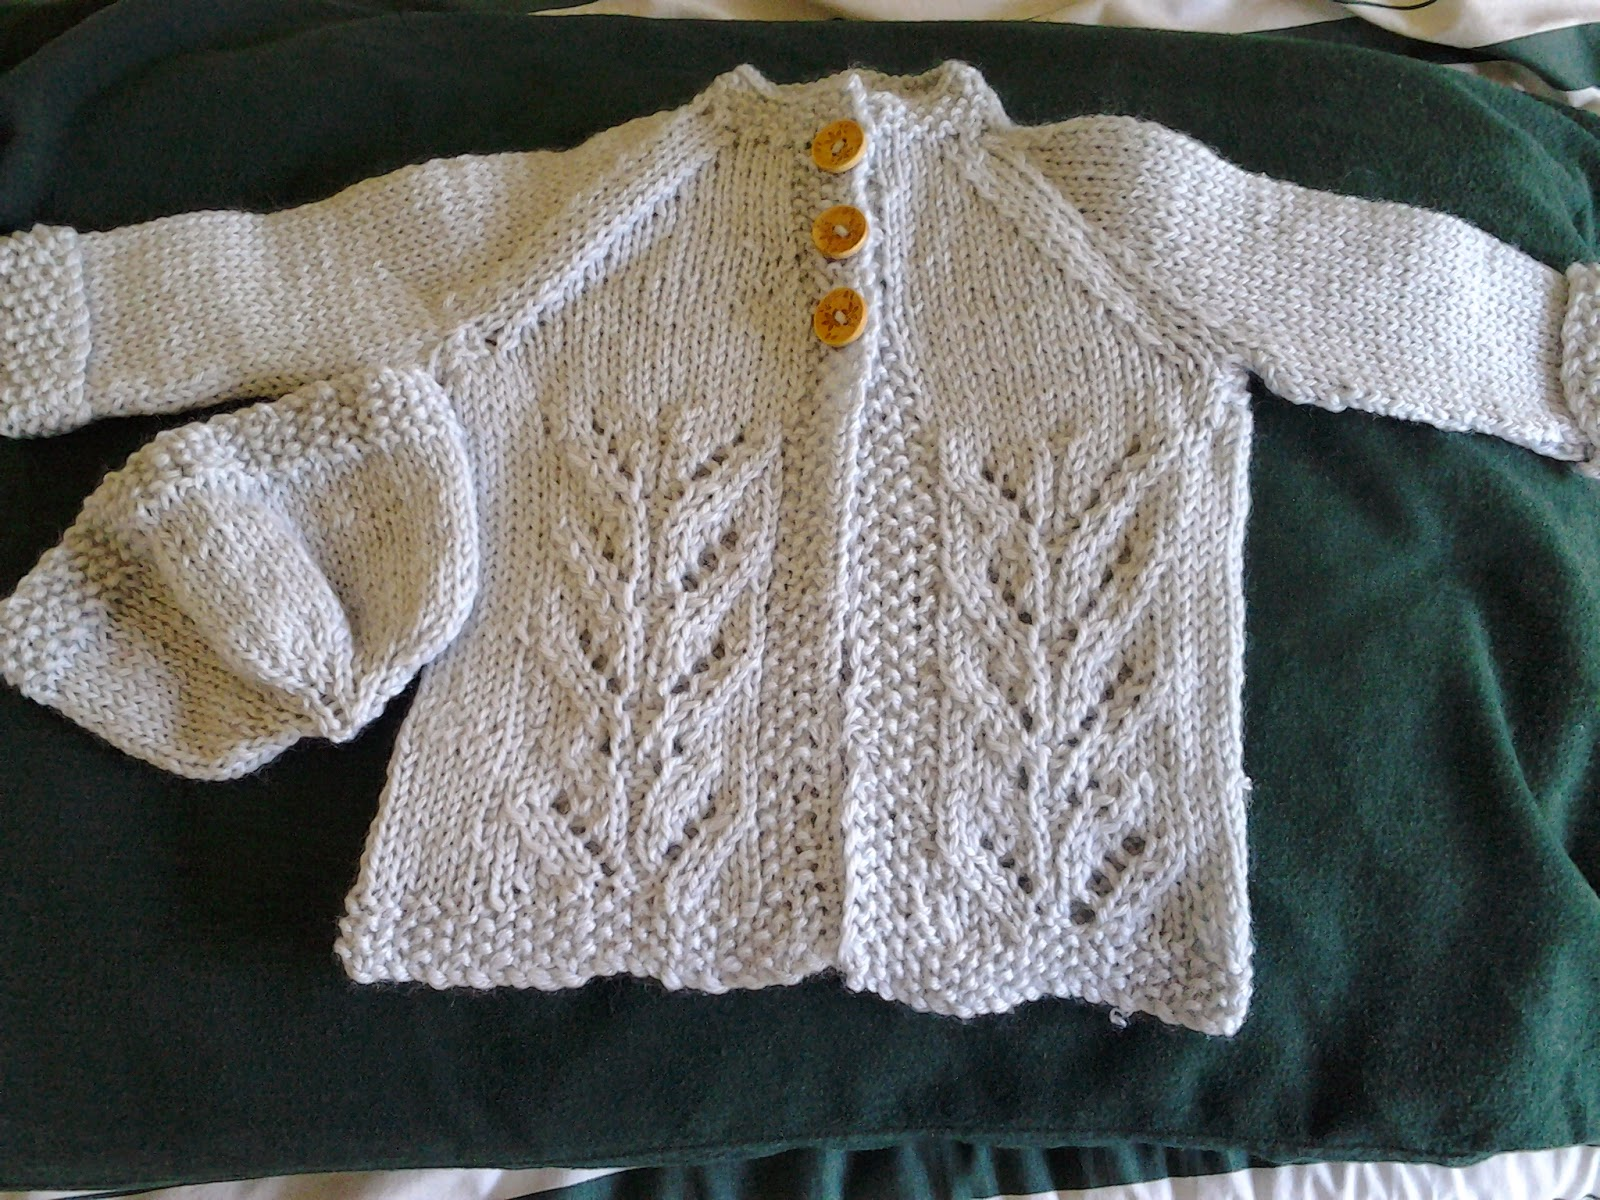 Knitting Pattern Raglan Cardigan : alankarshilpa: A Free Knitting pattern - Baby Cardigan Raglan from Bottom up.